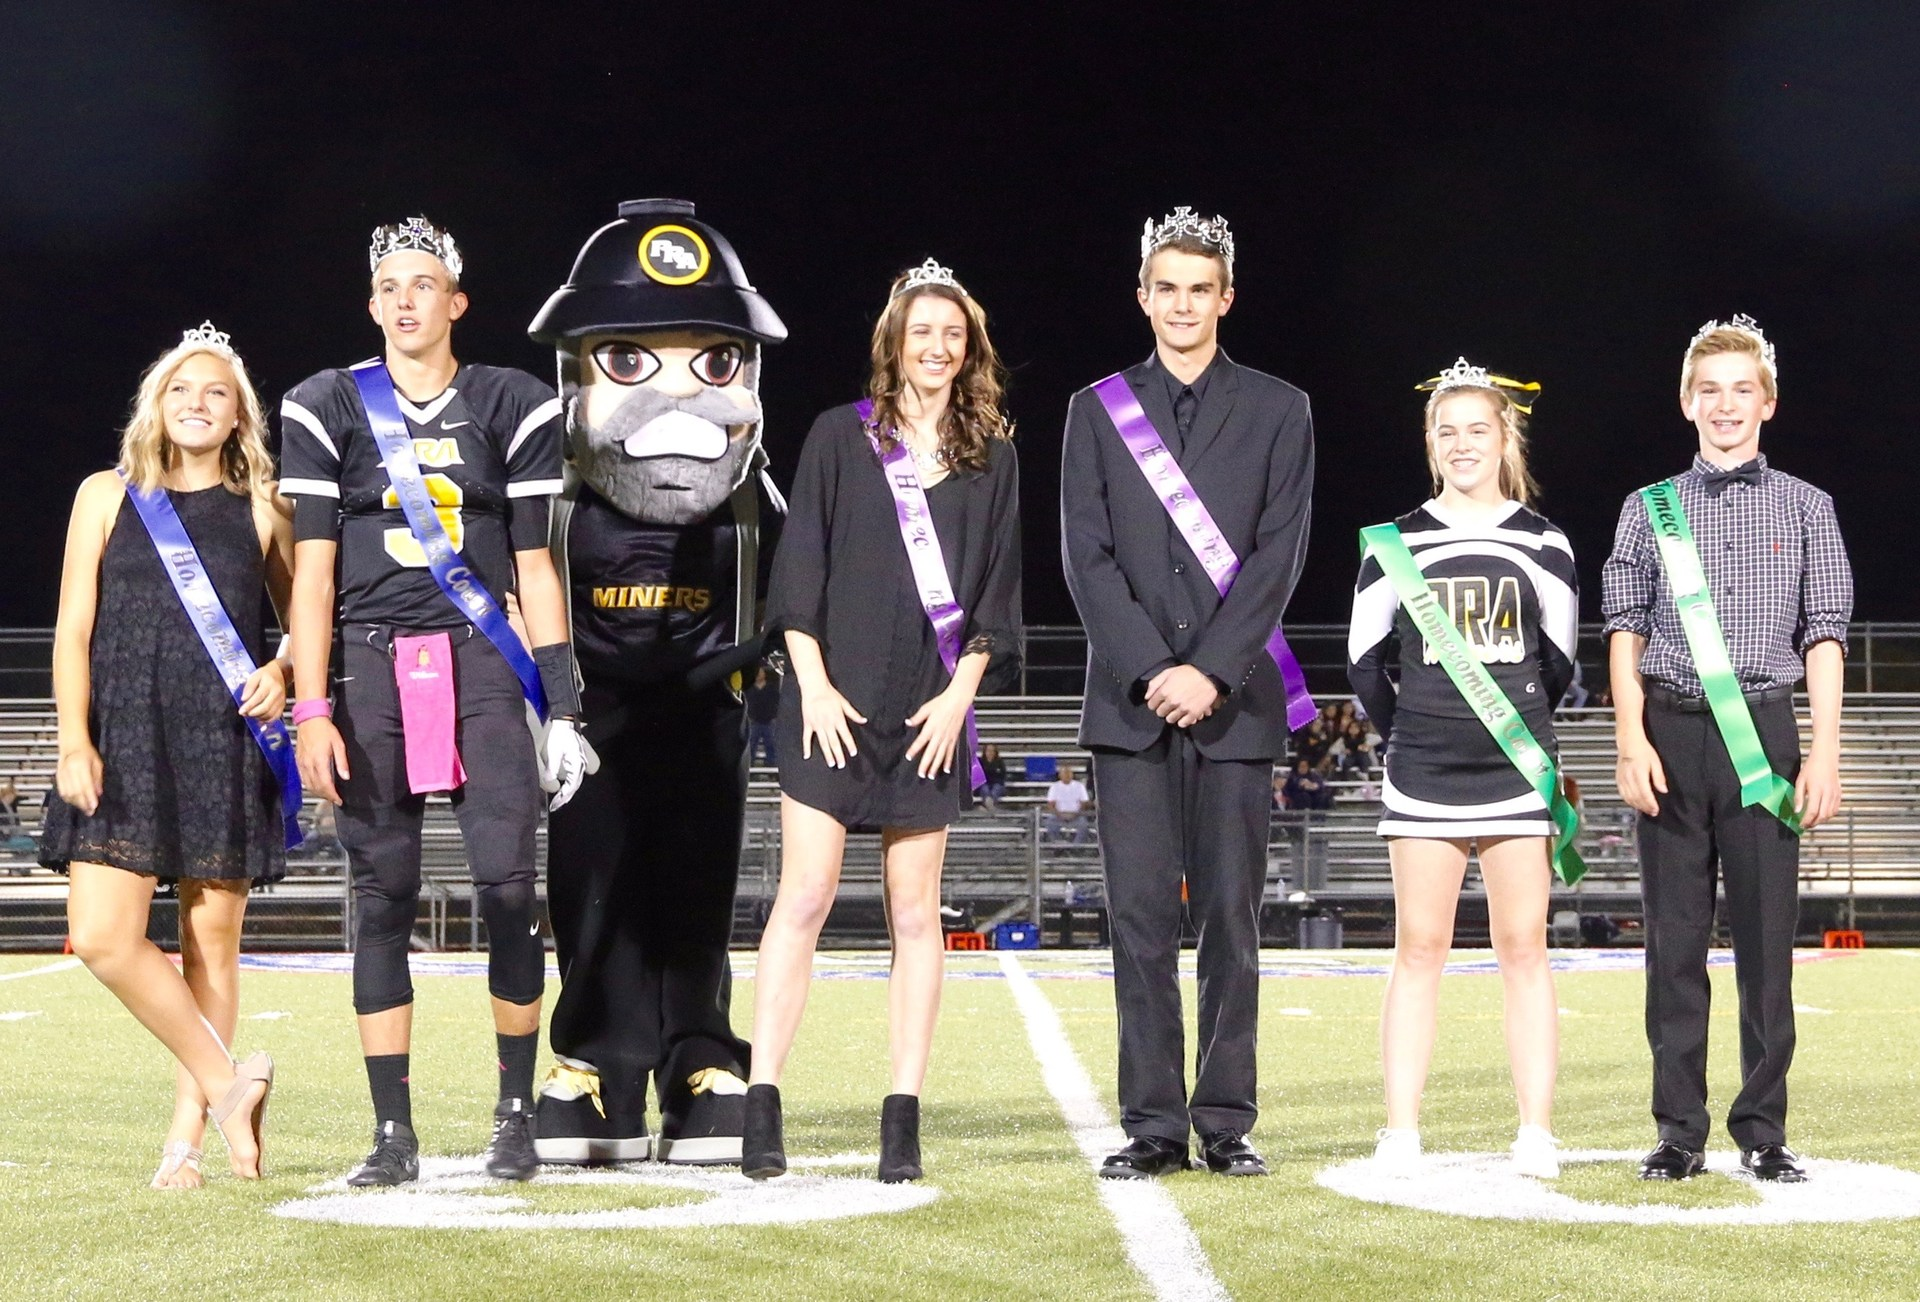 student homecoming royalty posing with school Miner mascot